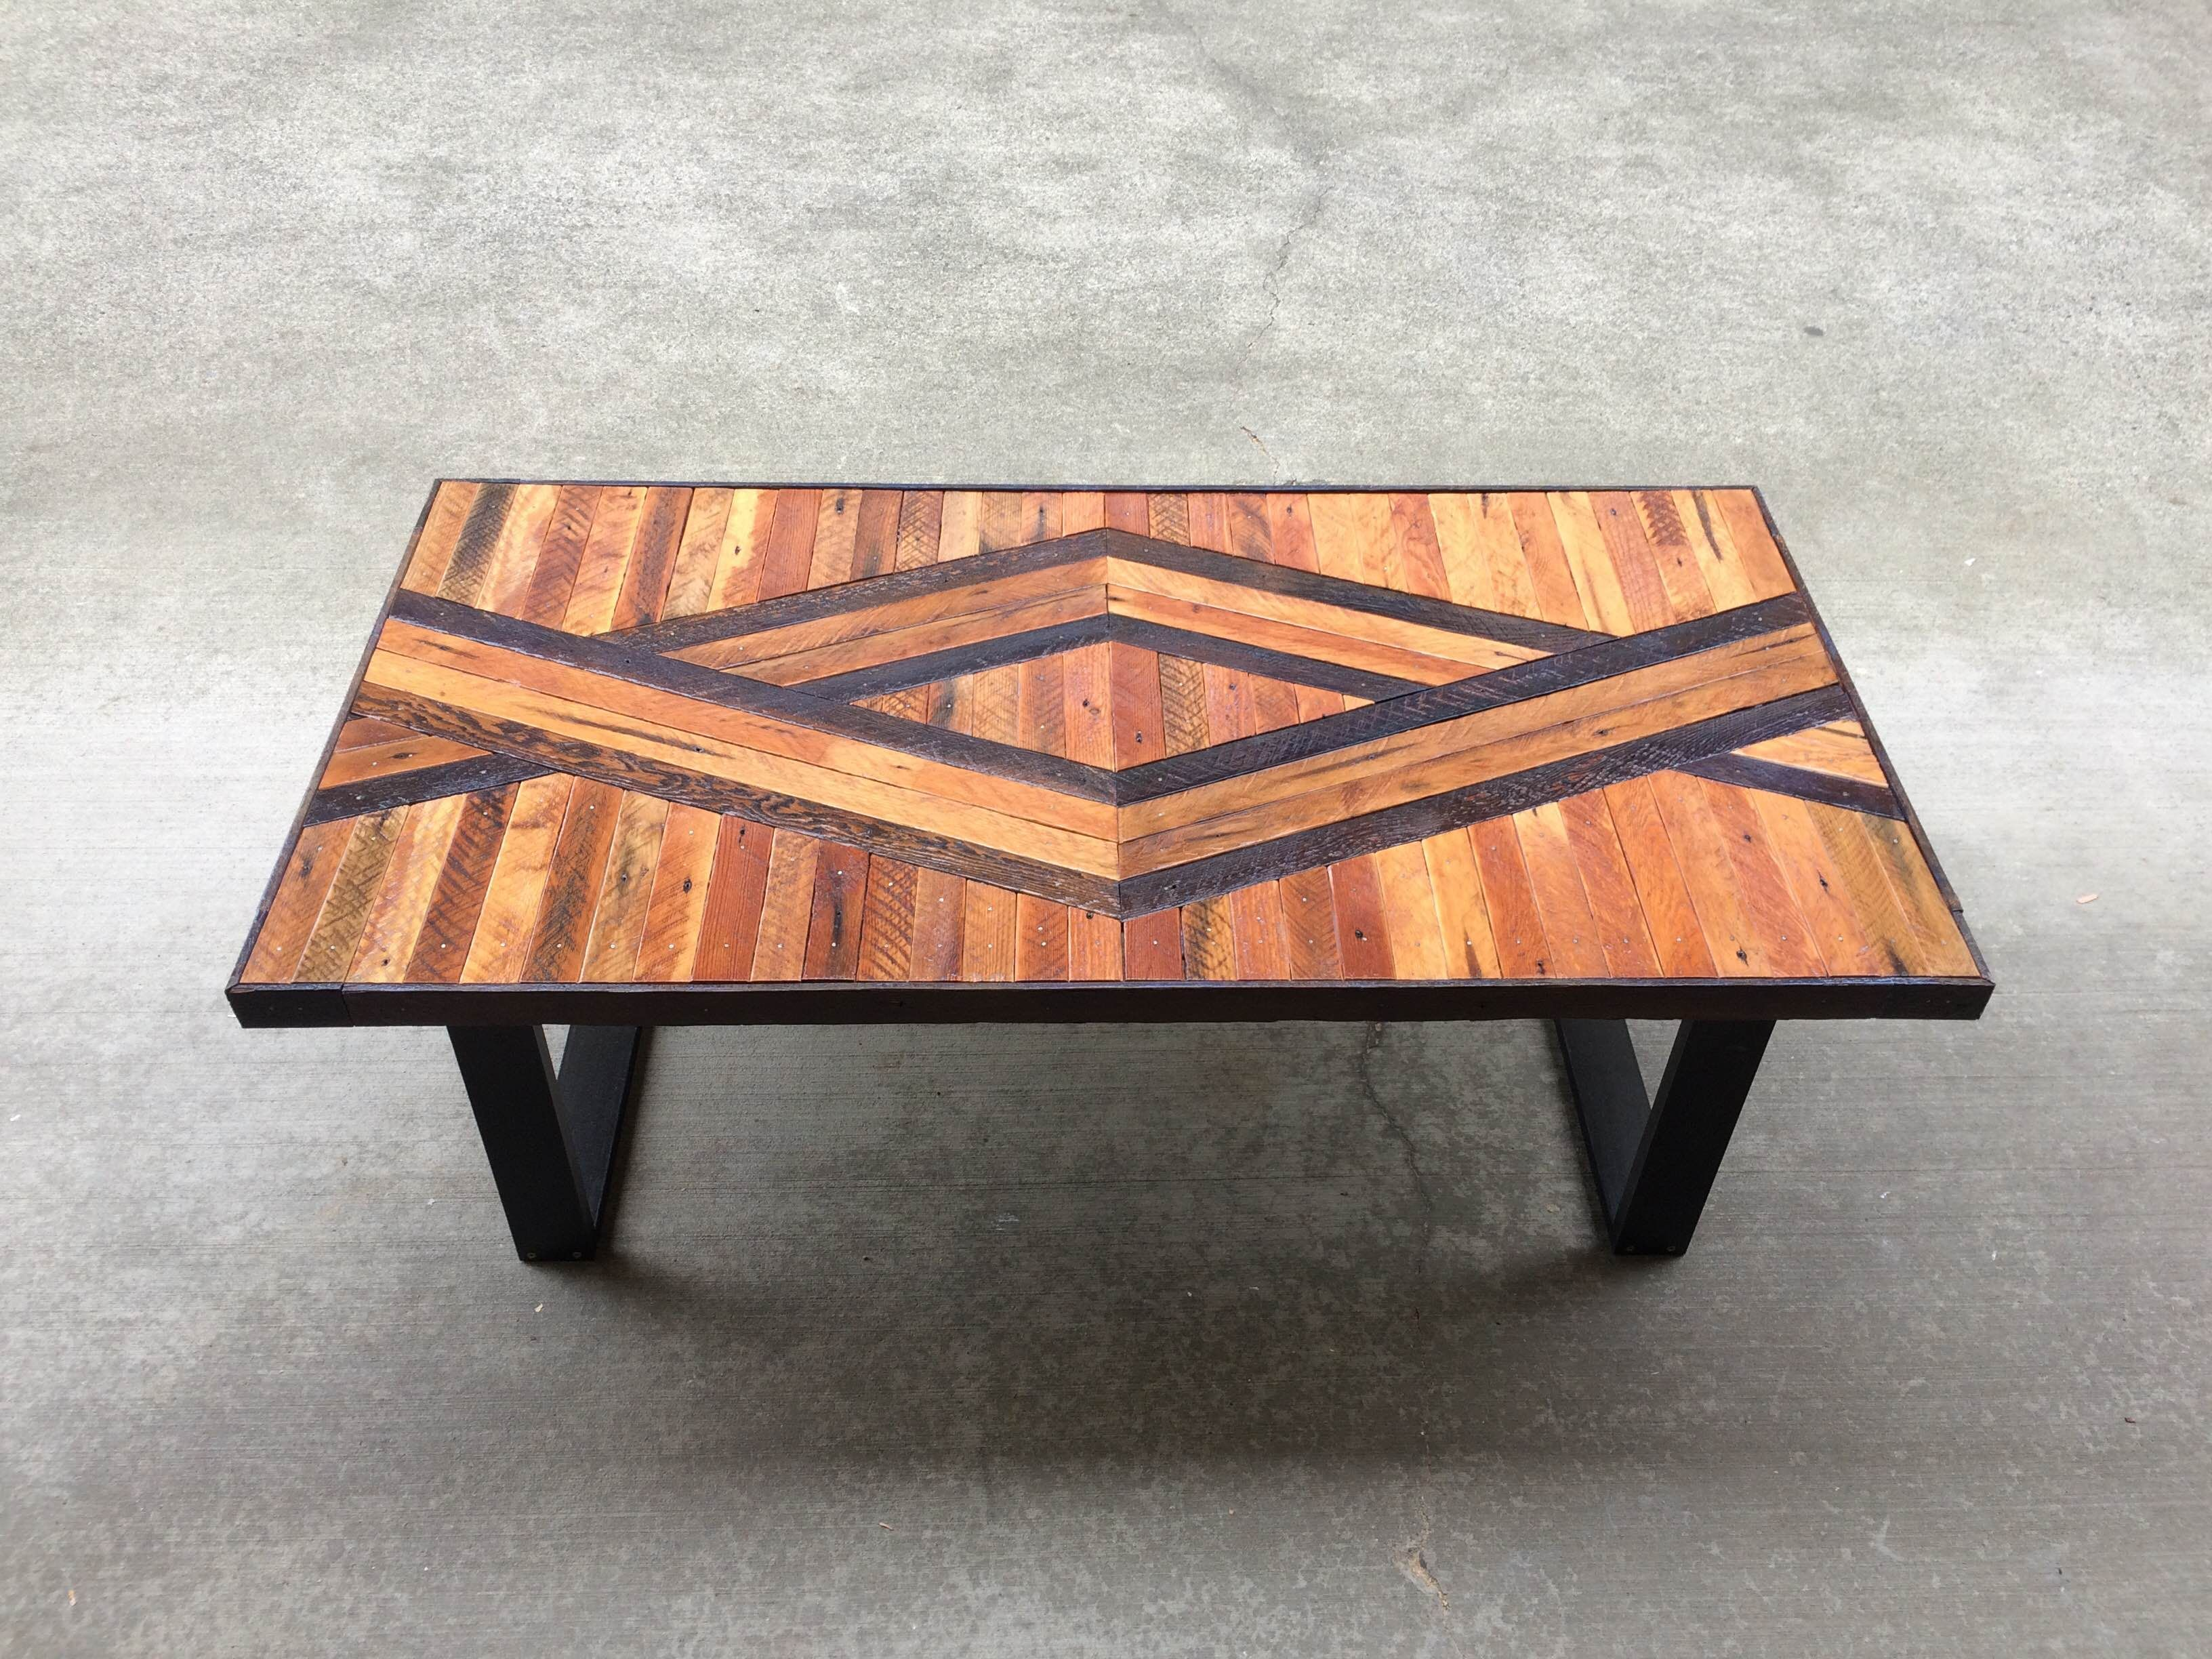 Wood table top designs - Find This Pin And More On Wood Table Tops